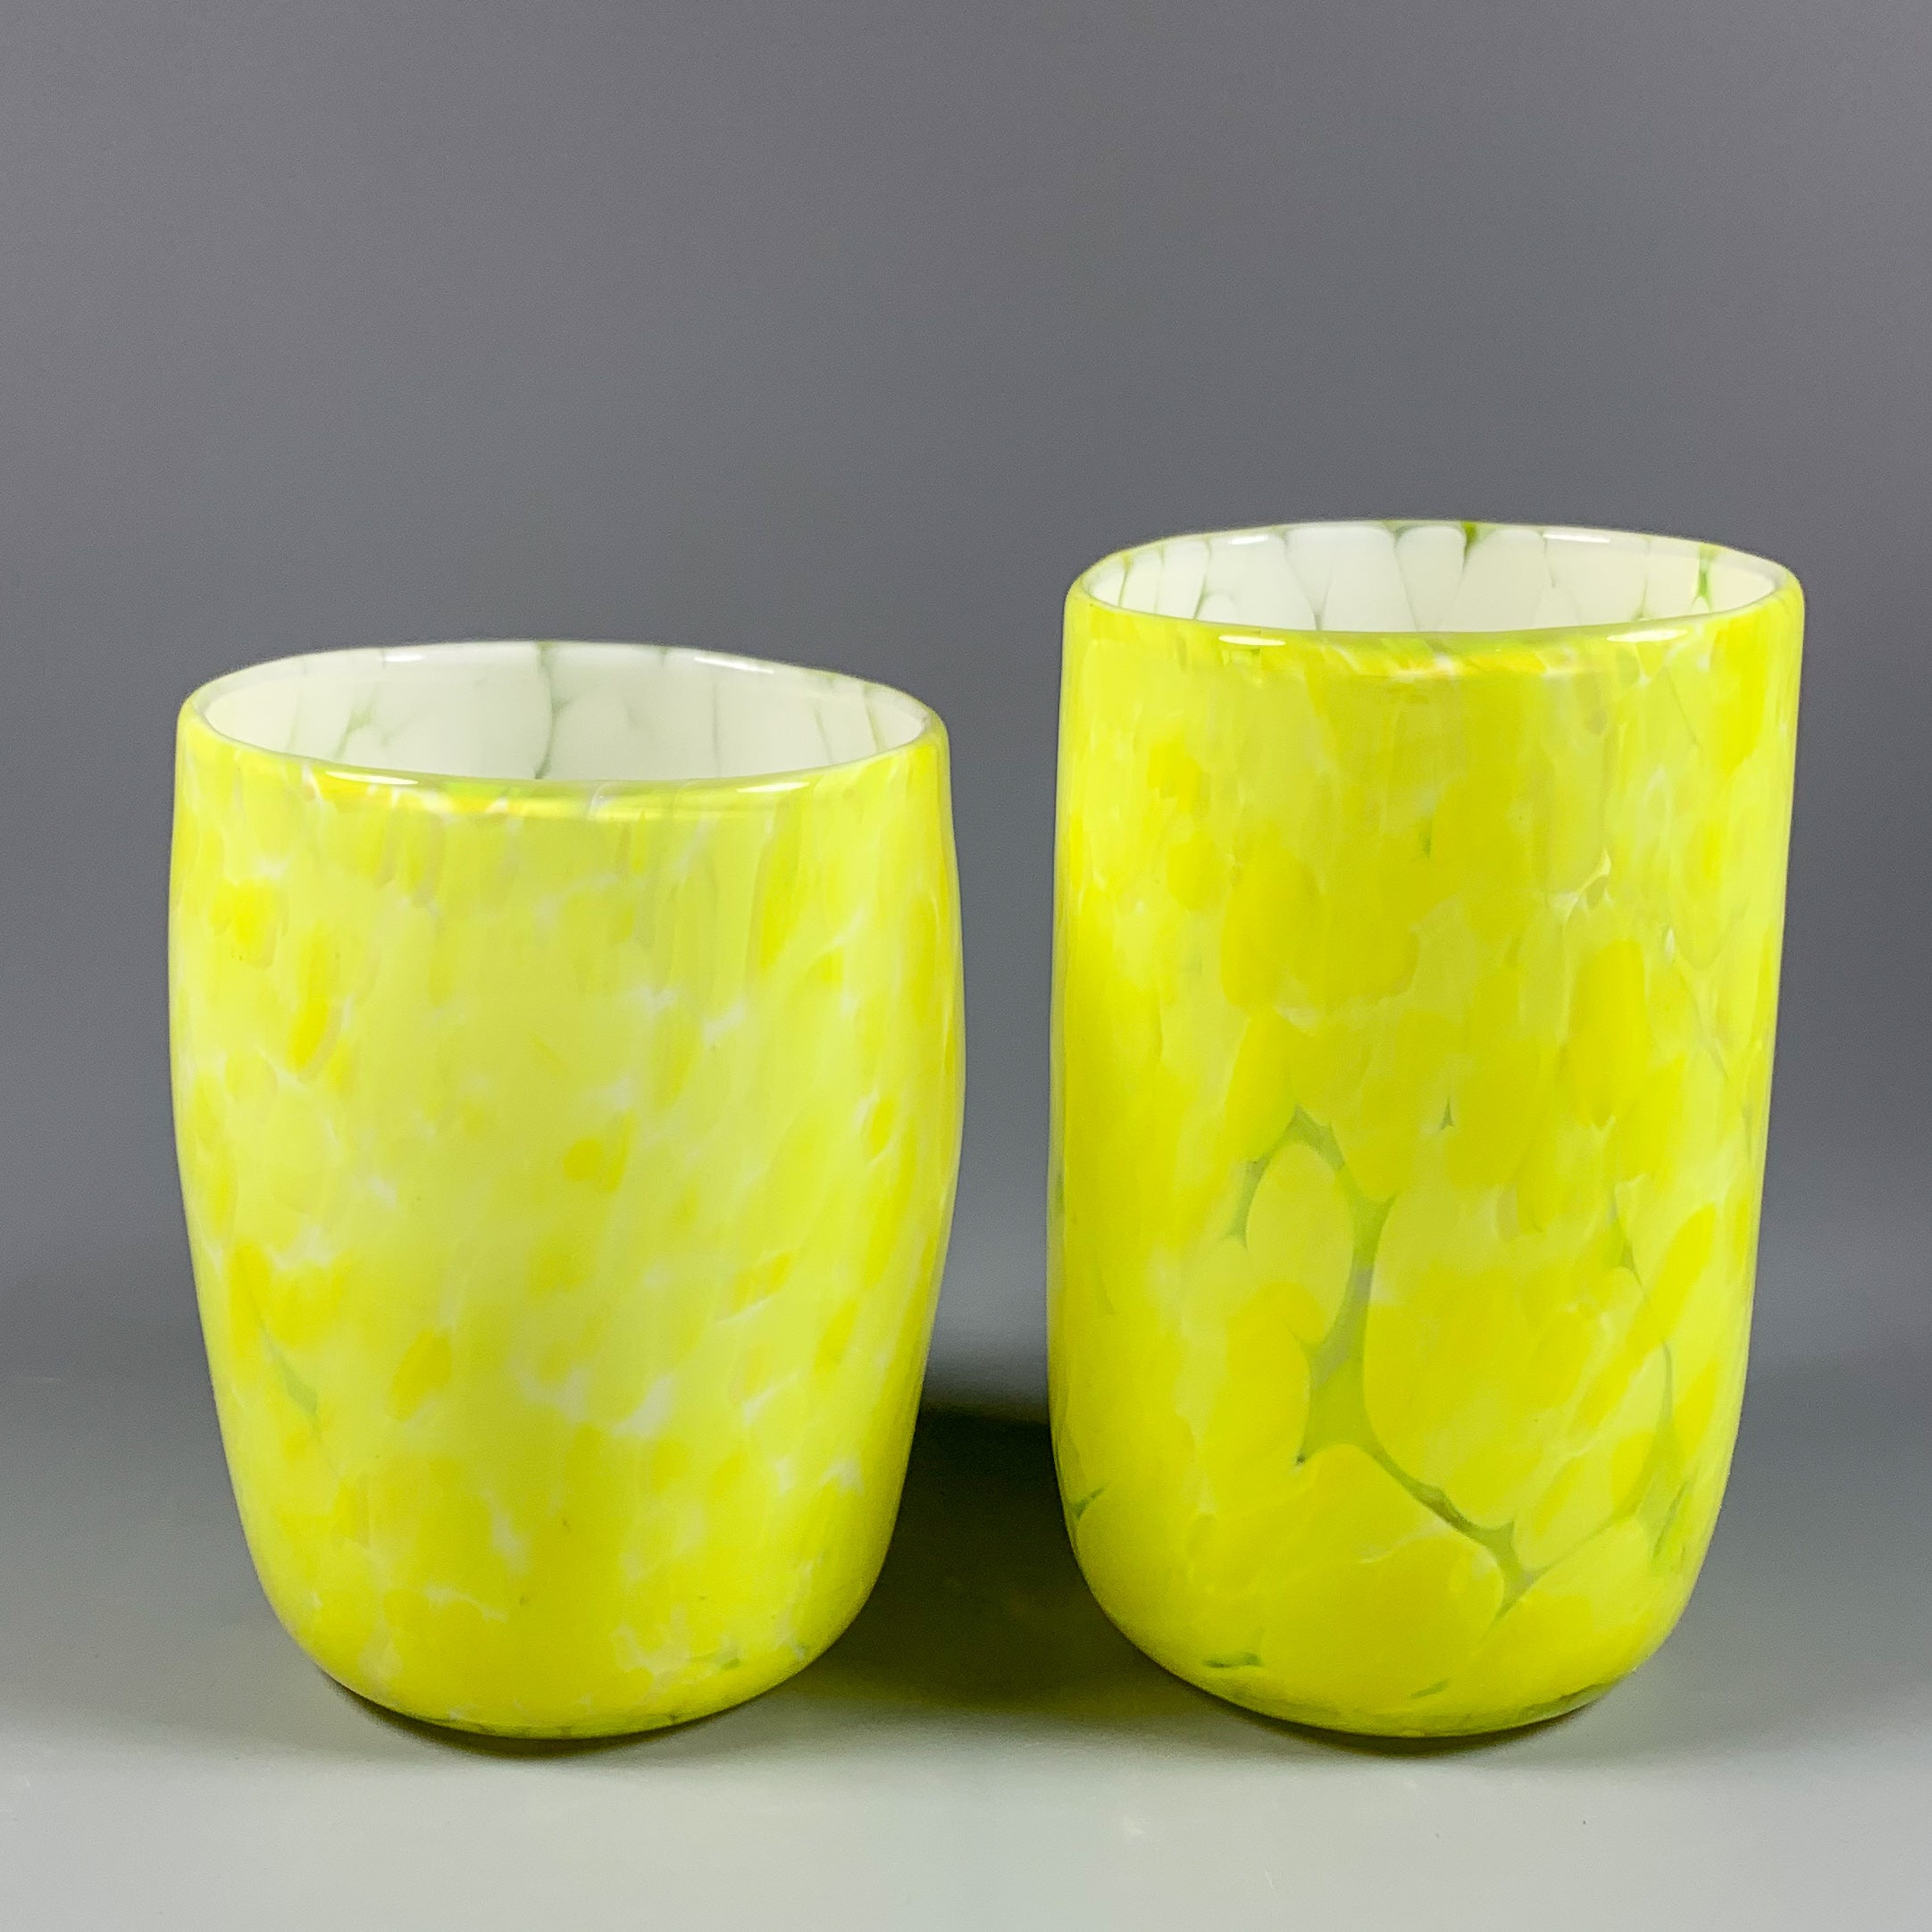 Cheerful Cups: Sunshine